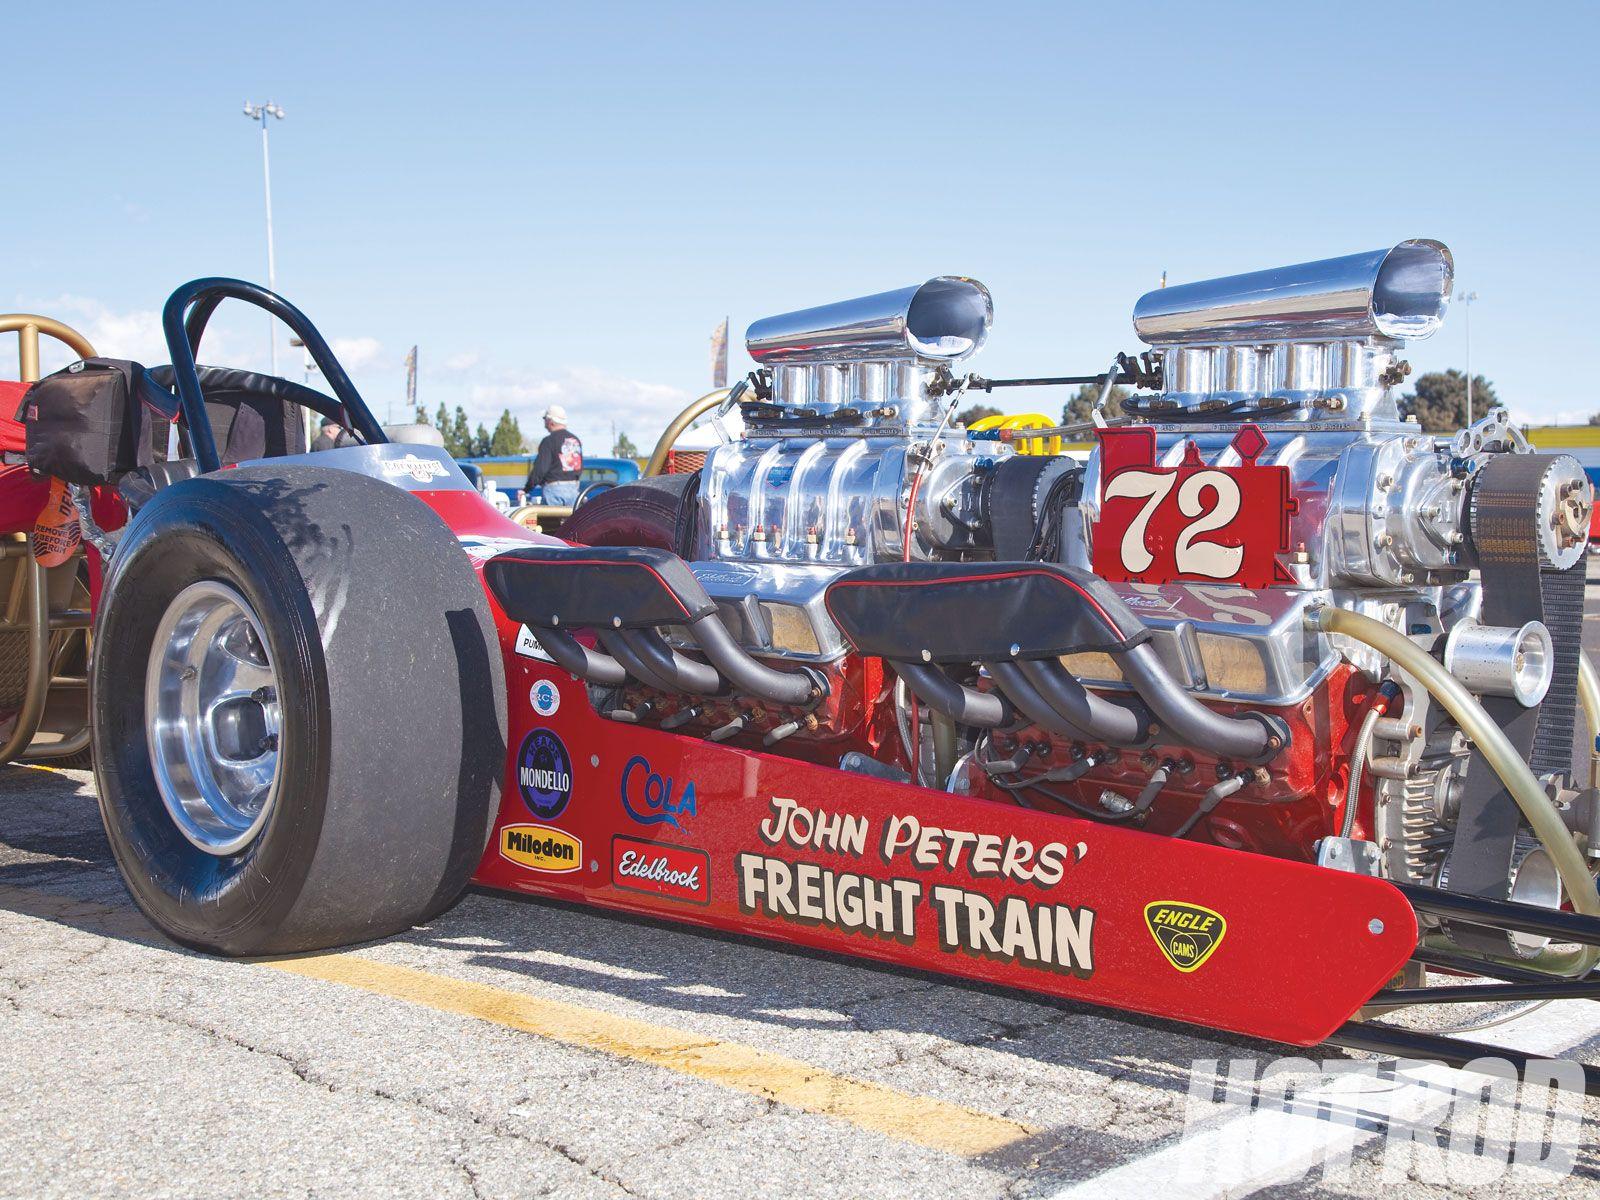 freight train twin engine top fuel [ 1600 x 1200 Pixel ]